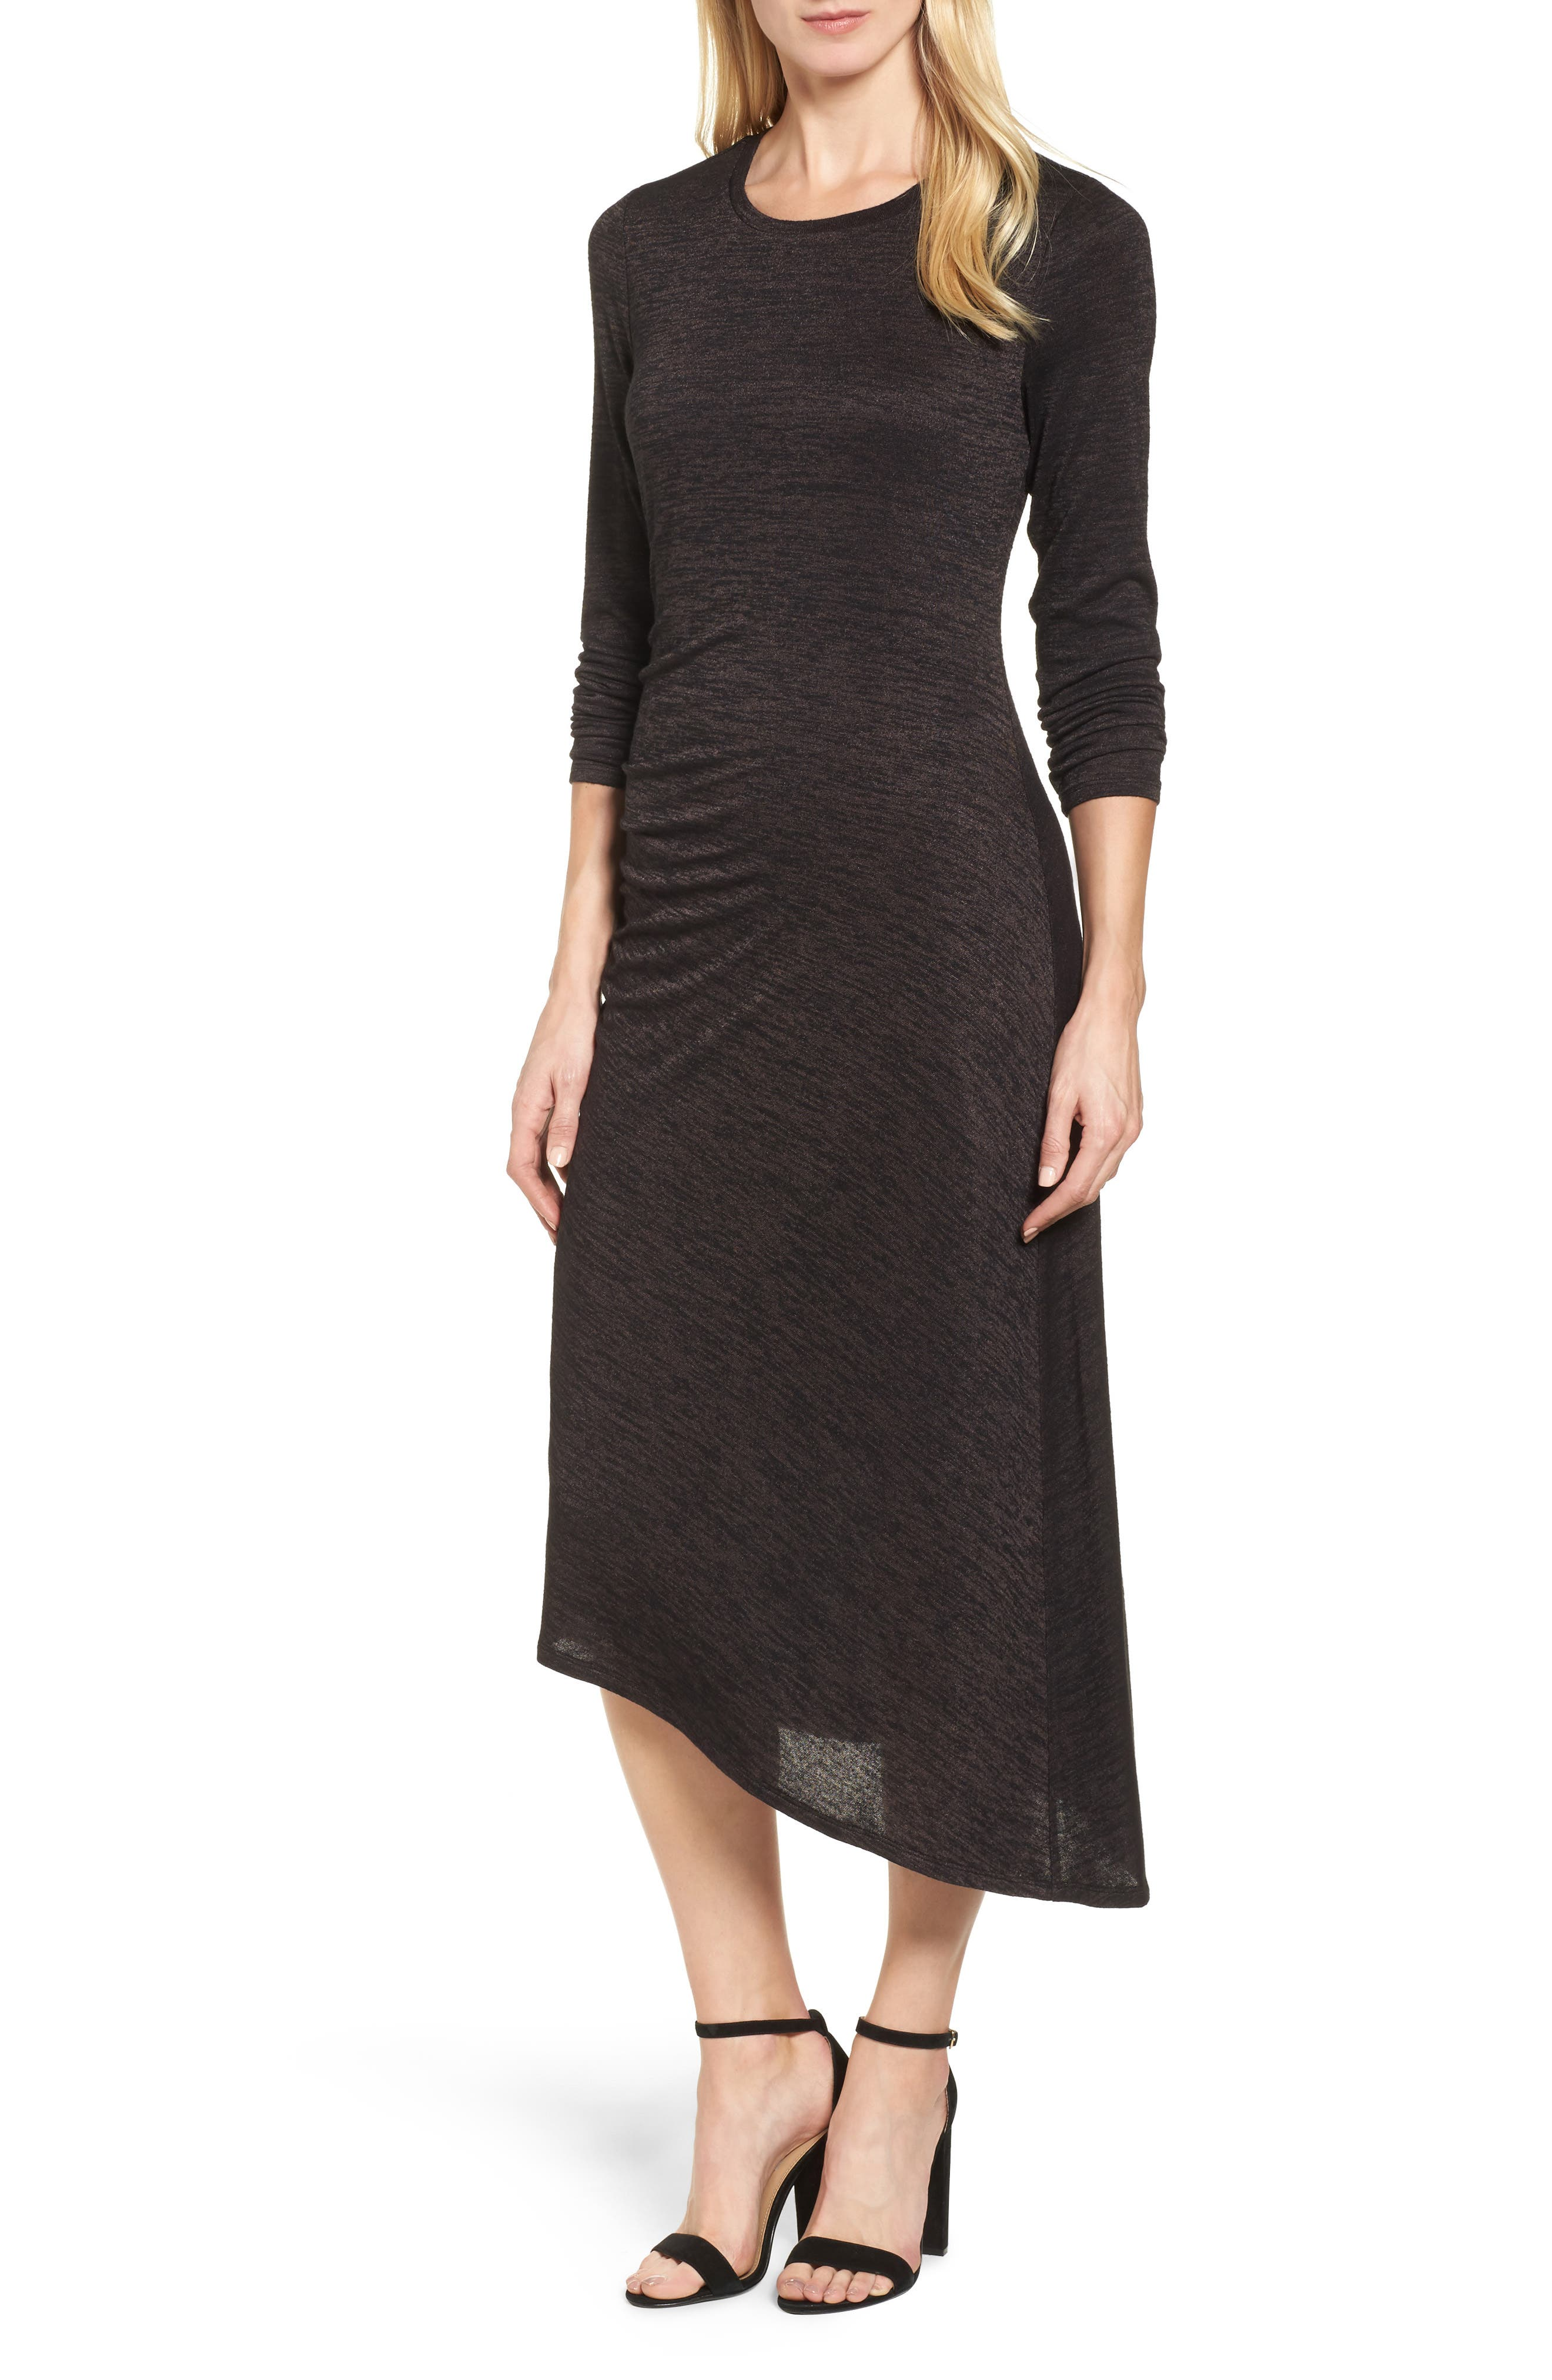 Firelight Midi Dress,                         Main,                         color,